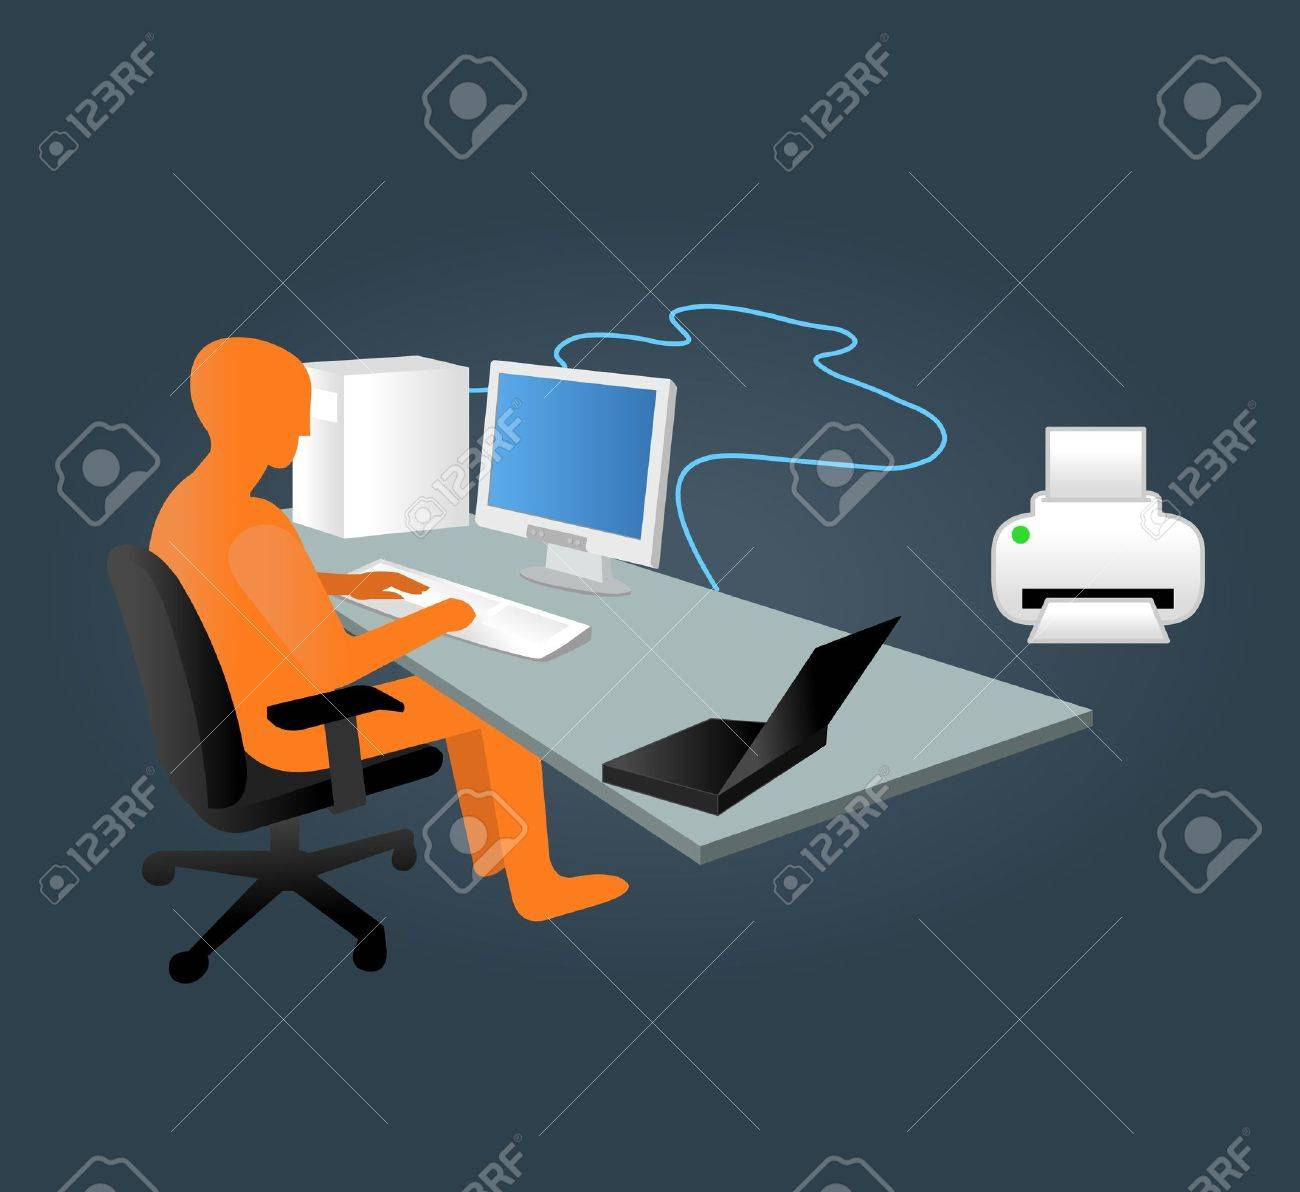 Template with business man working on computer in office Stock Vector - 19167729